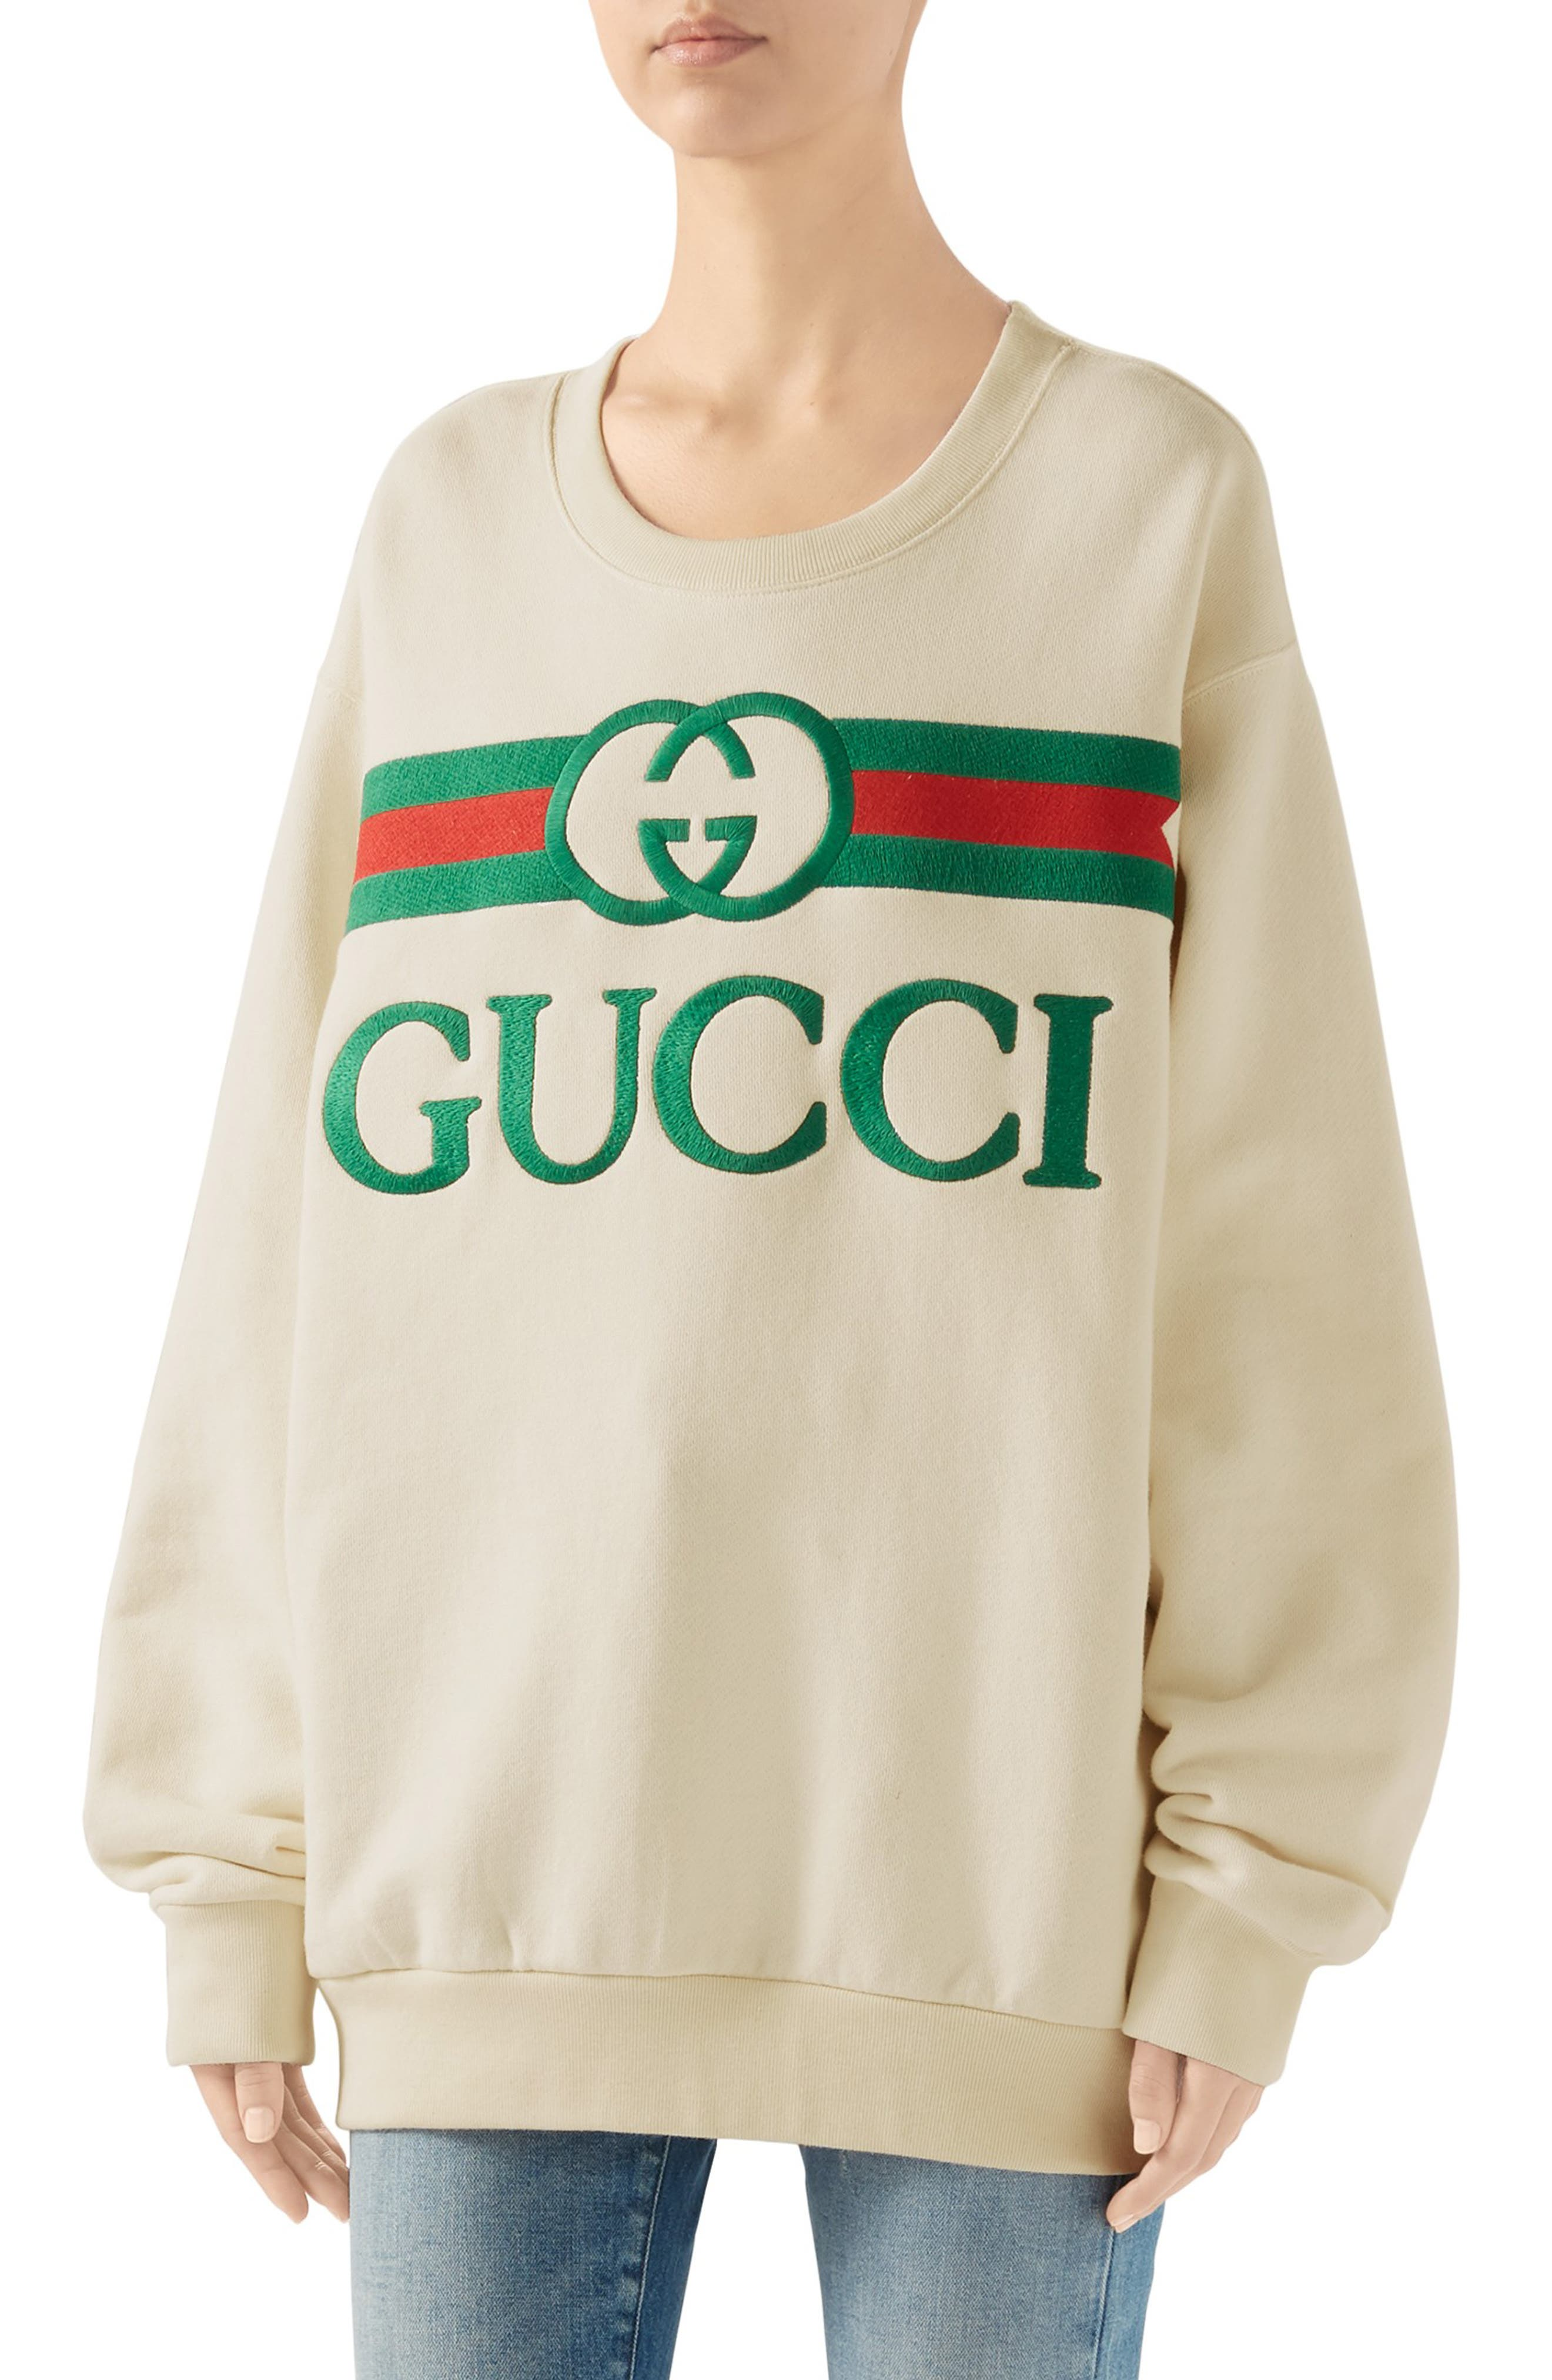 Women's Gucci Clothing | Nordstrom